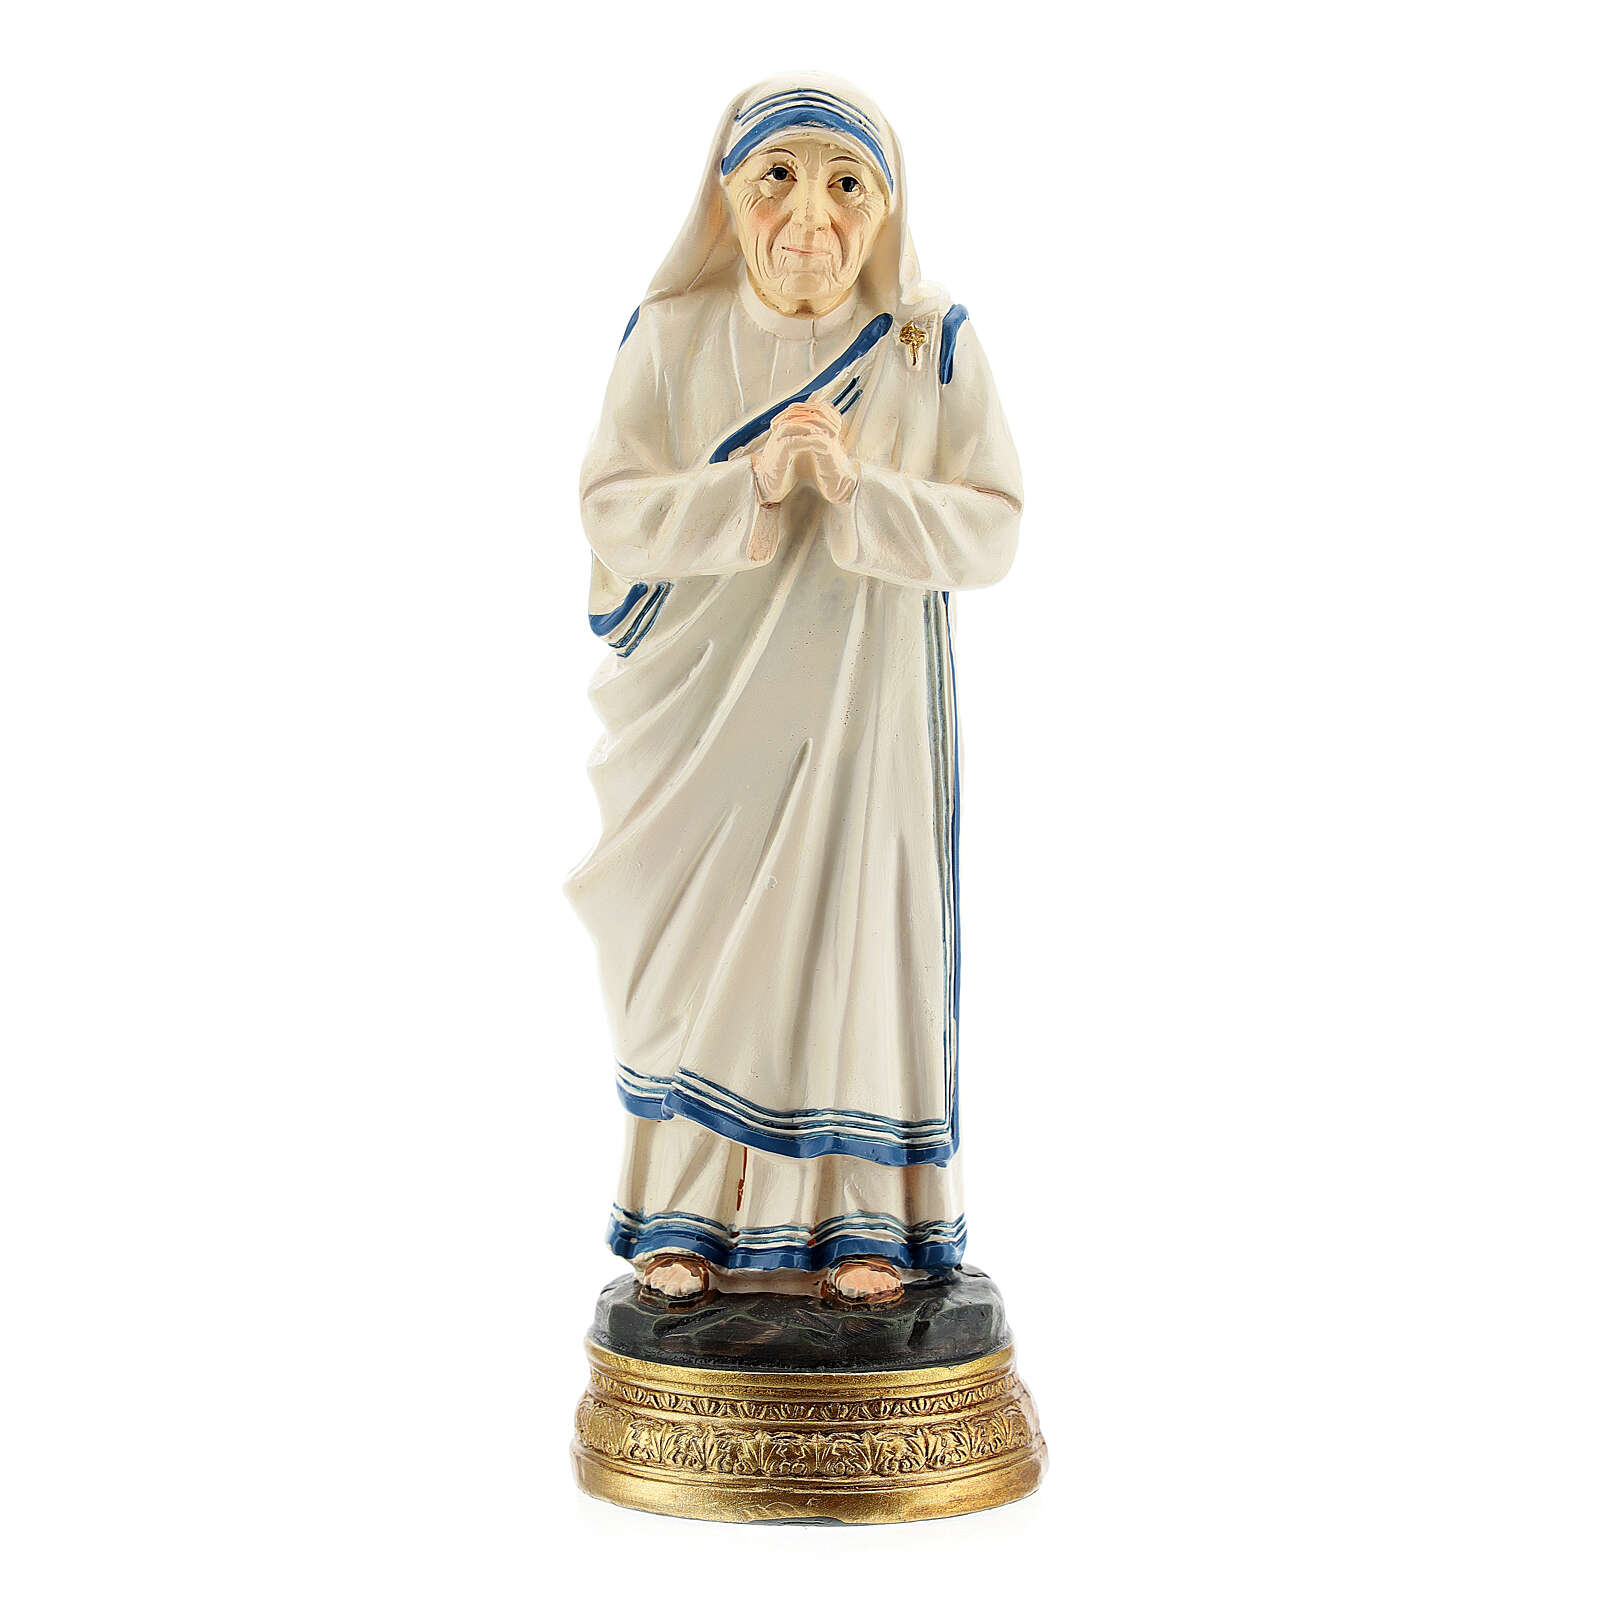 Statue of St Mother Teresa of Calcutta, joined hands in resin 12.5 cm 4